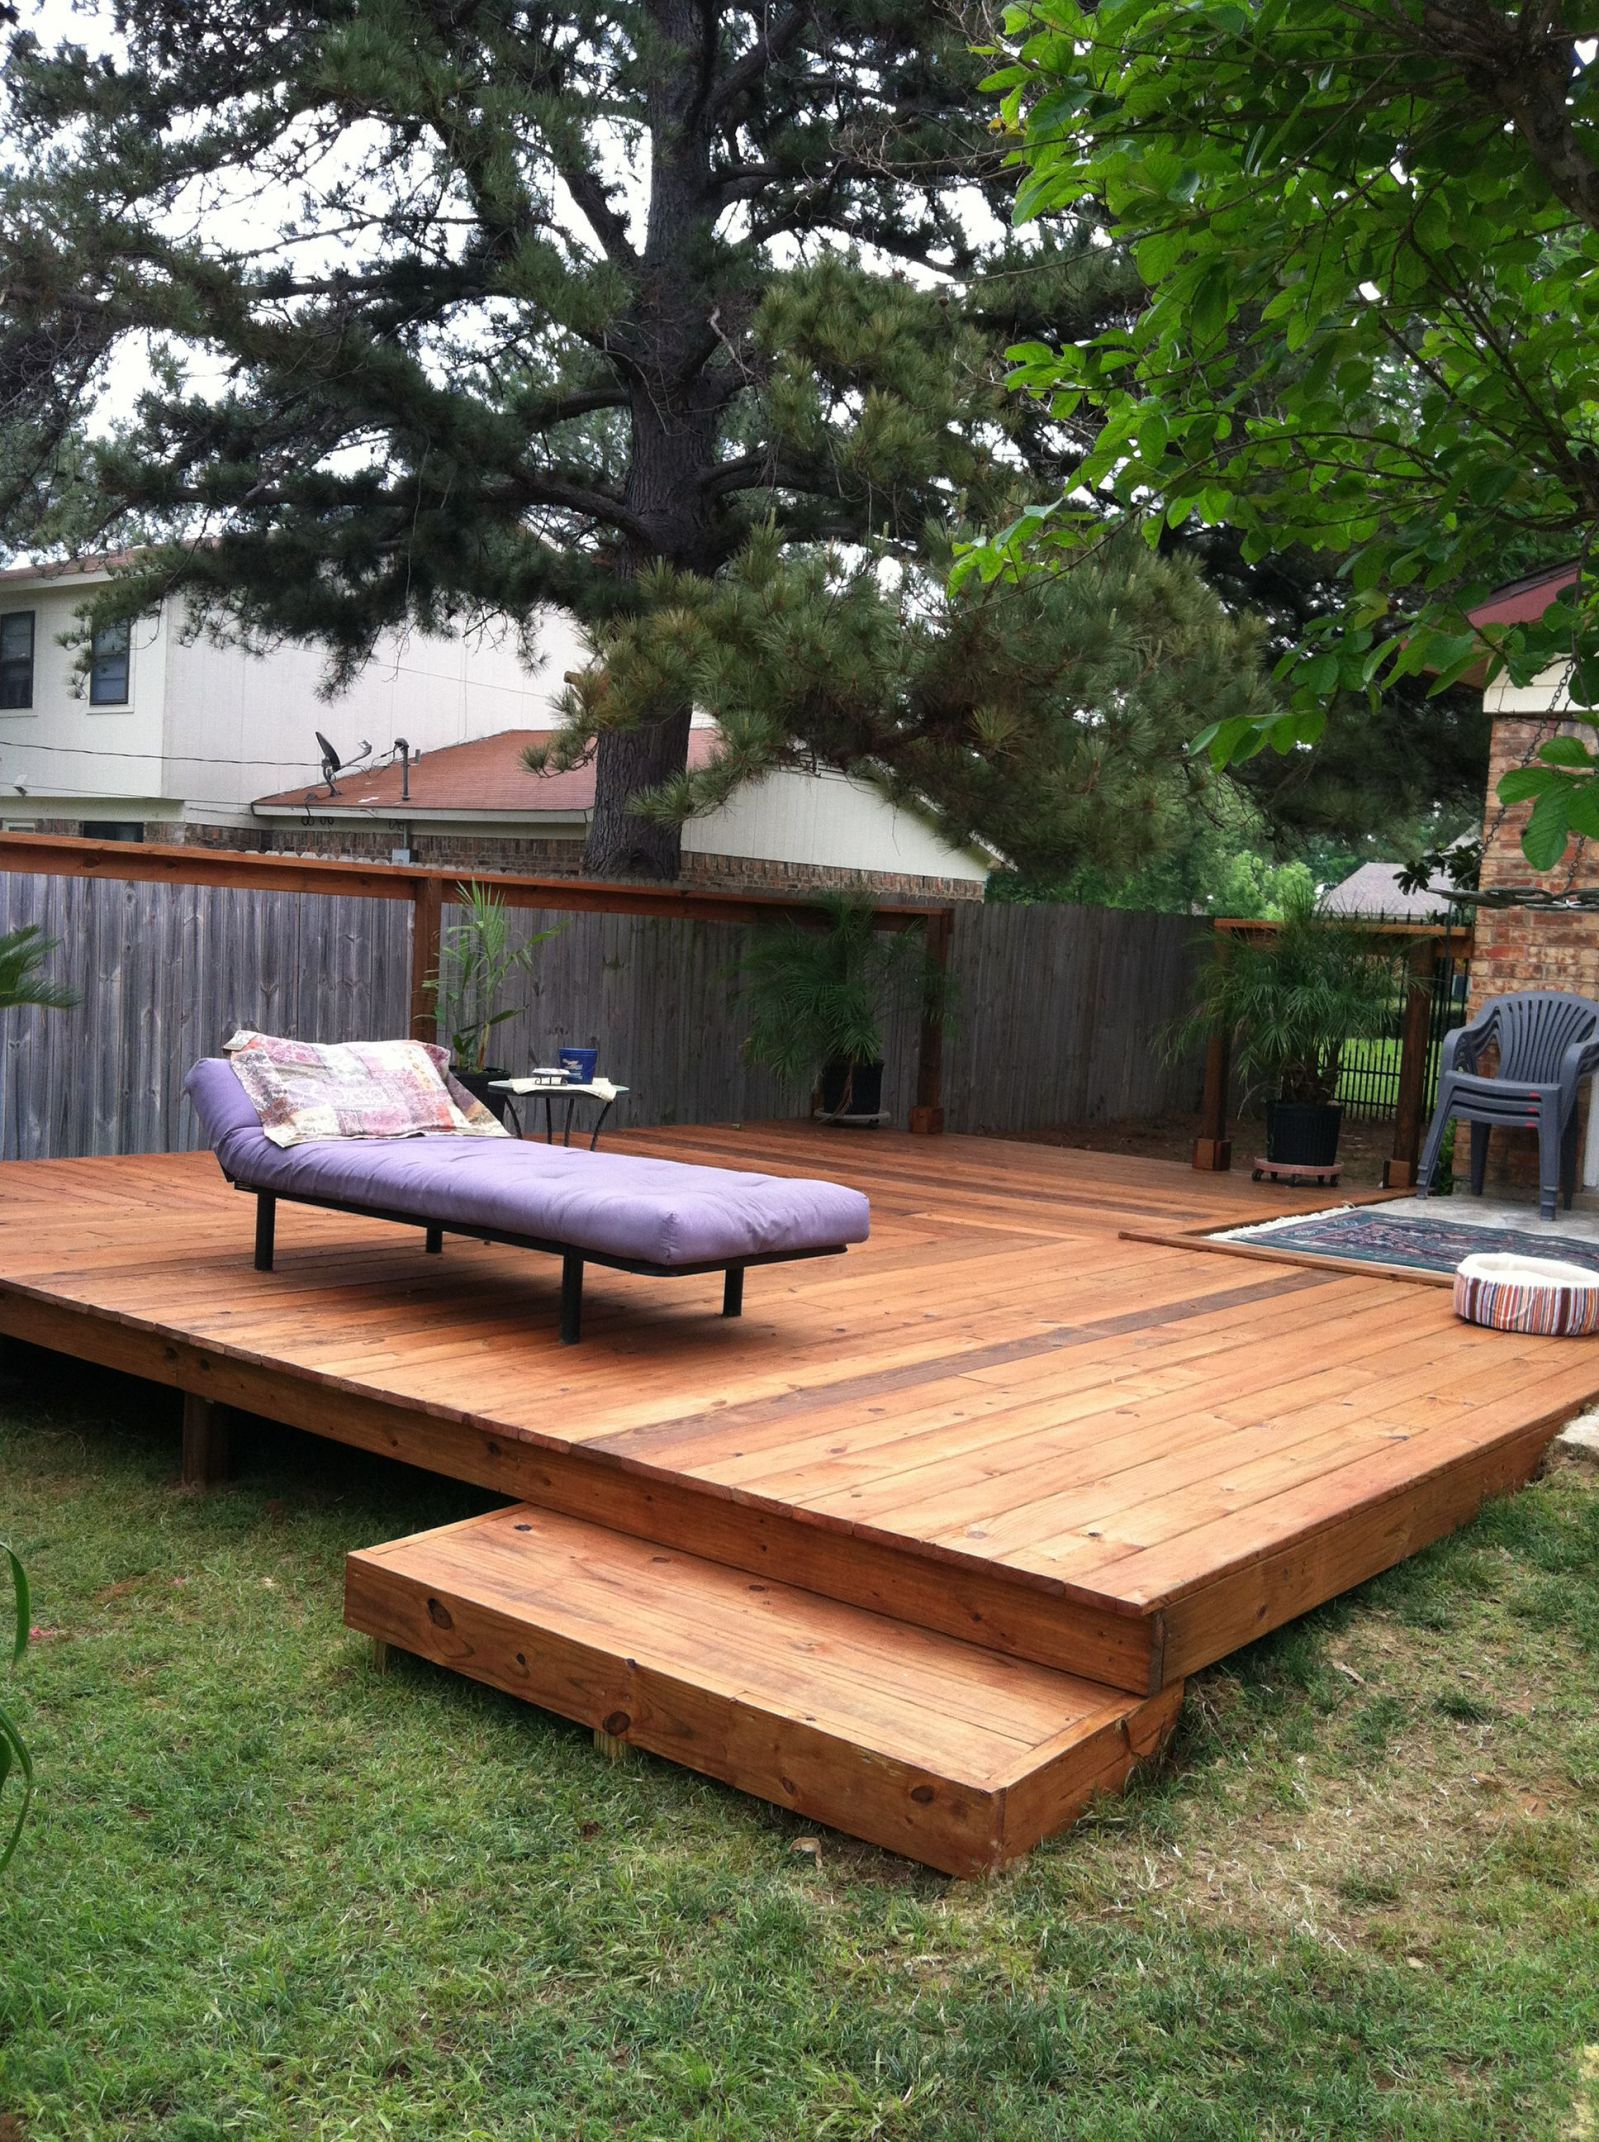 Inviting Backyard Deck Ideas With Wooden Floor Tile and Long Chair